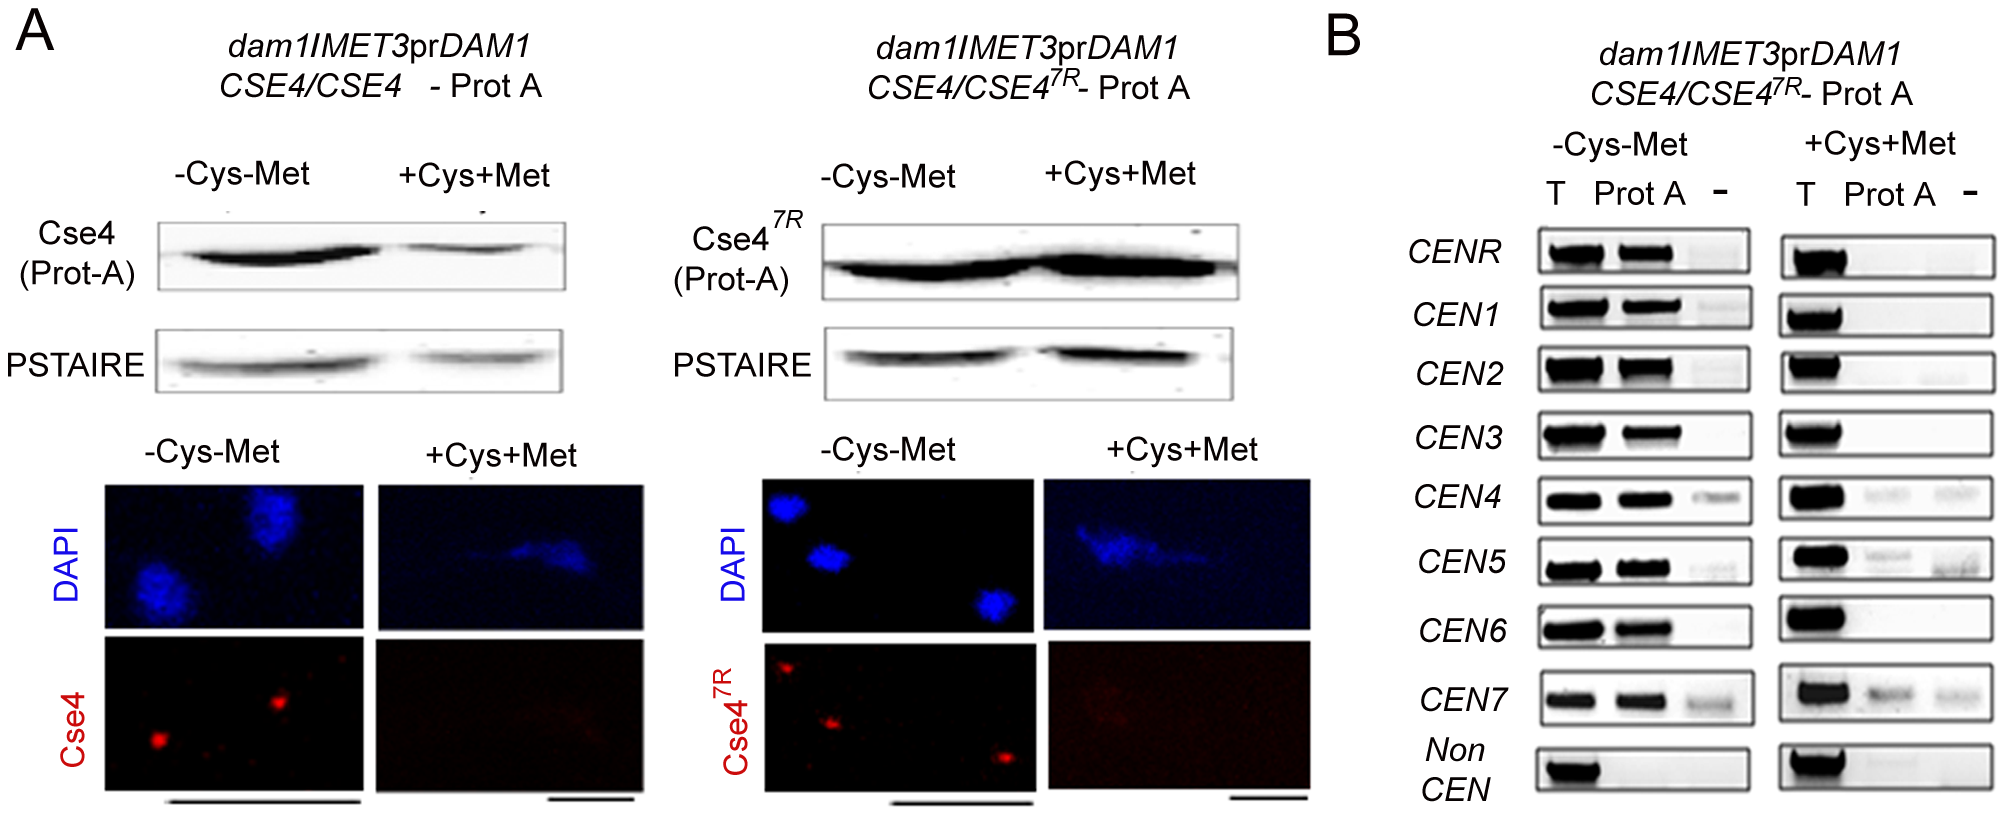 Depletion of Dam1 leads to degradation of CENP-A/Cse4 through the ubiquitin-mediated proteasomal degradation pathway.